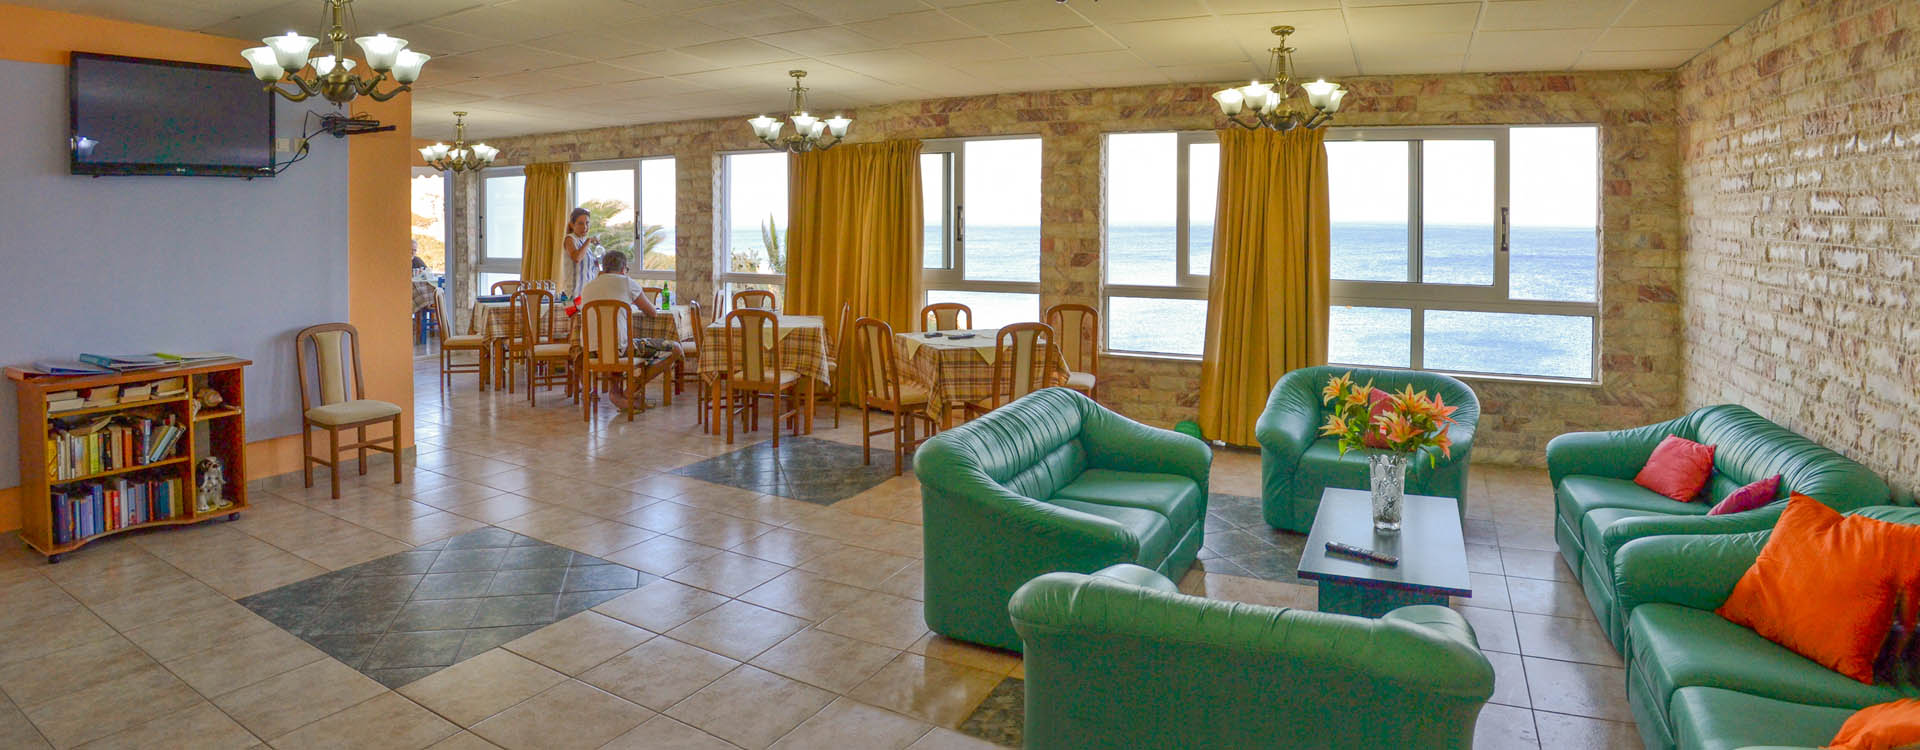 Excellent areas and service from a friendly and helpful staff at Castelia Bay, Amoopi, Karpathos